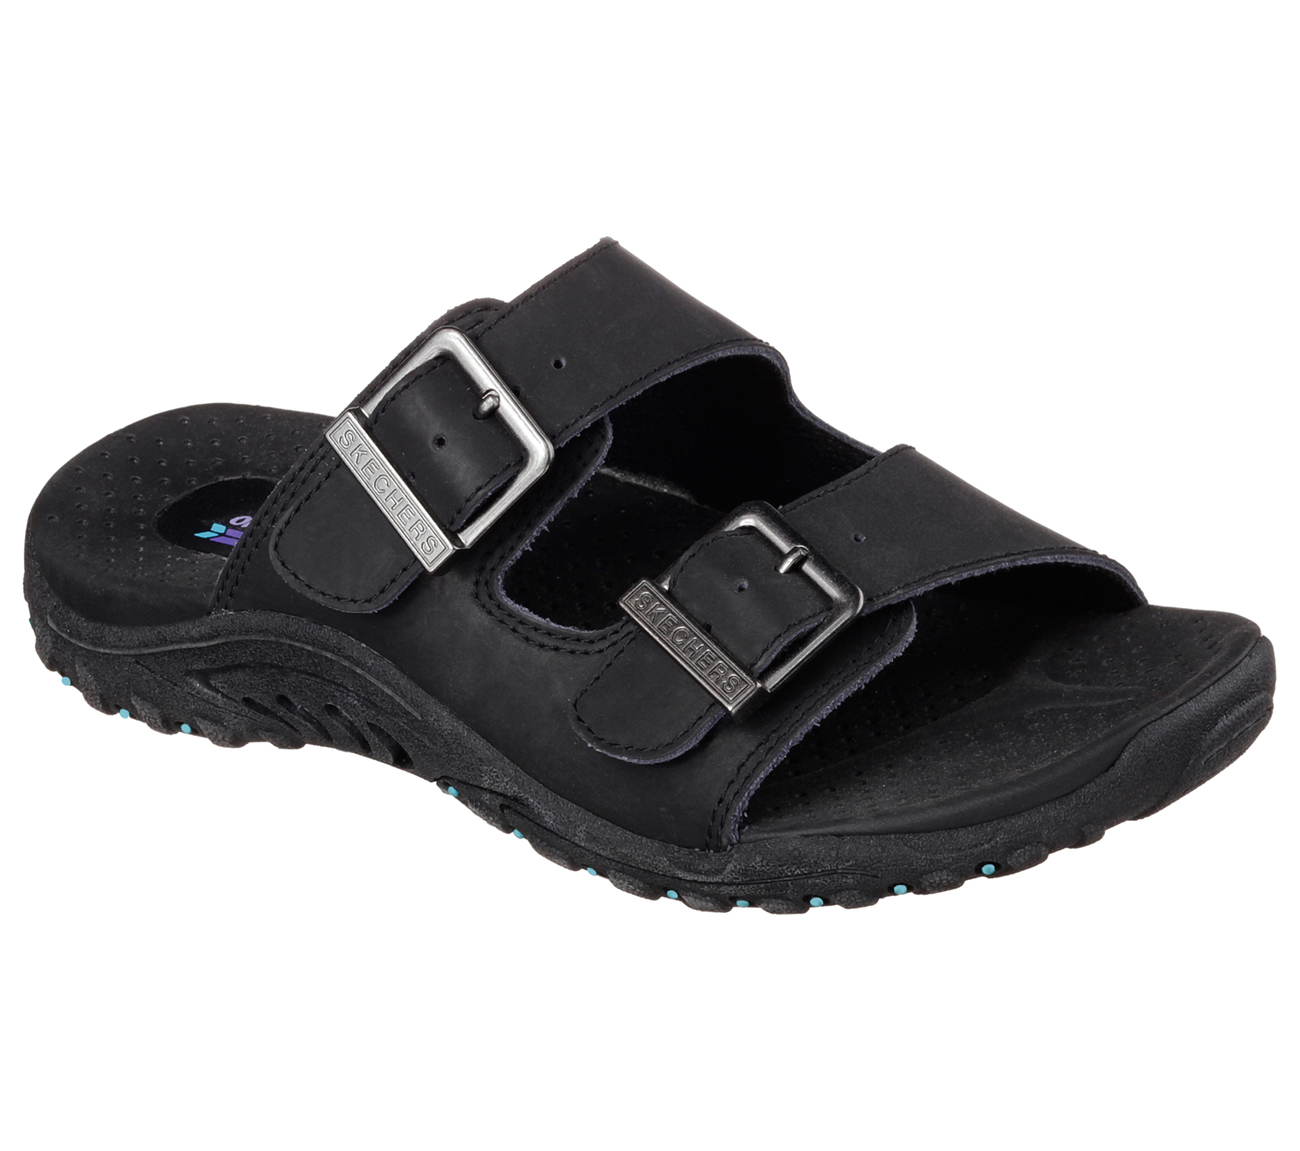 Dress Shoes With Excellent Arch Support